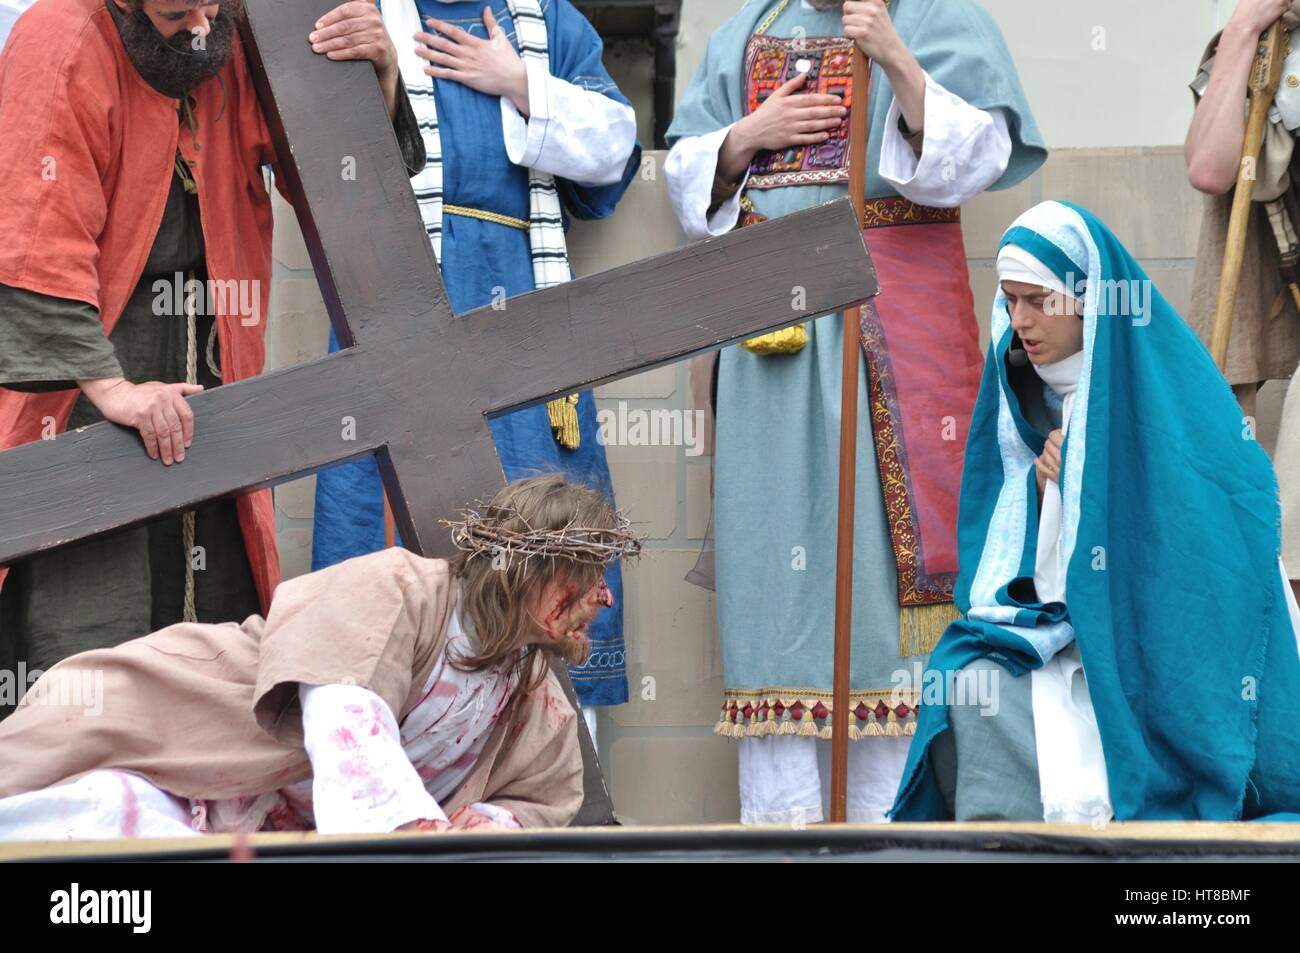 Jesus meets Veronica on the way to his crucifixion, during the street performances Mystery of the Passion. - Stock Image